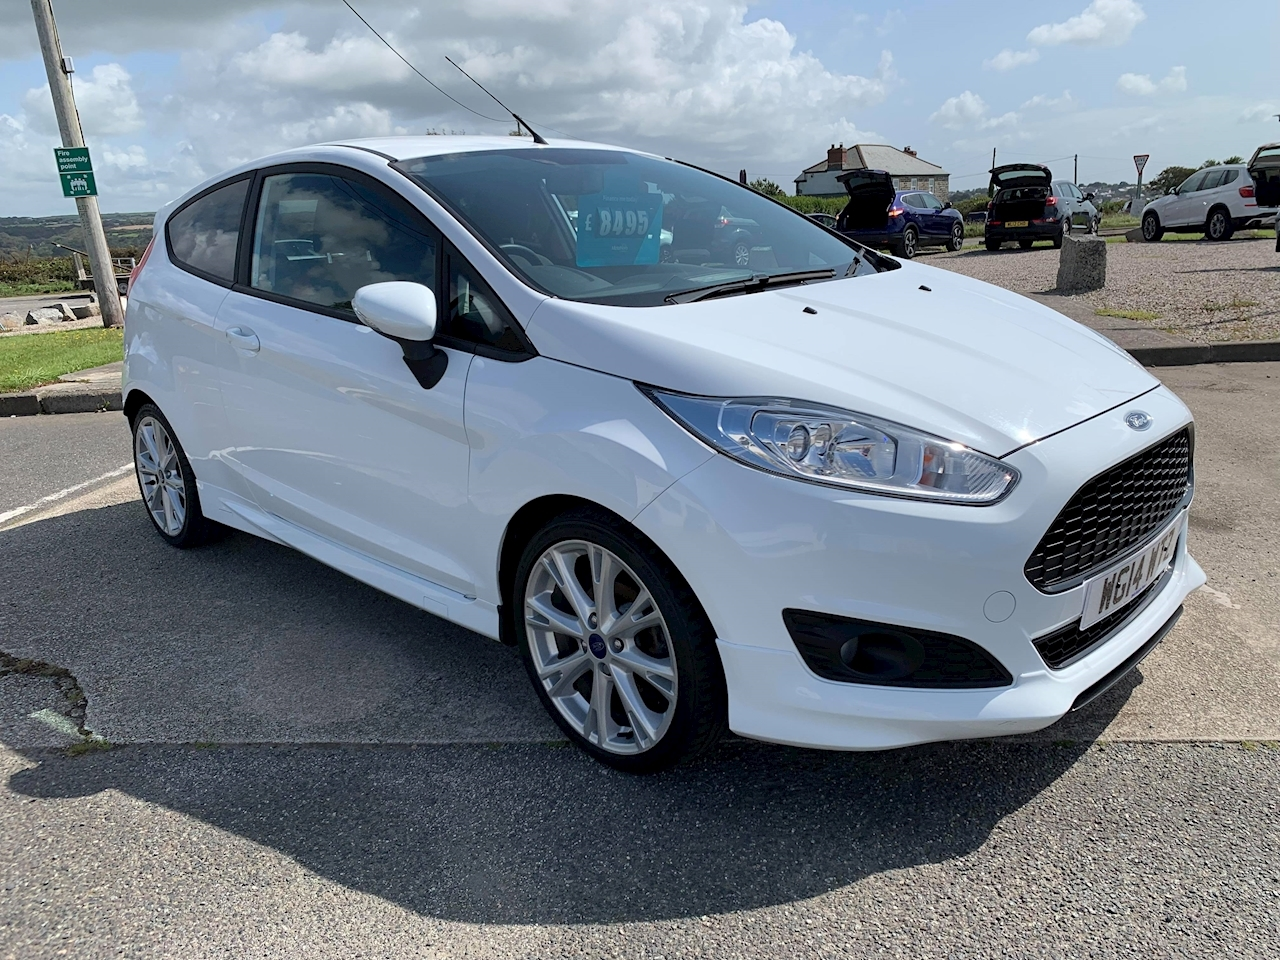 Used 2014 Ford Fiesta Zetec Fiesta Zetec S For Sale U10819 Chris Nicholls Motors Ltd